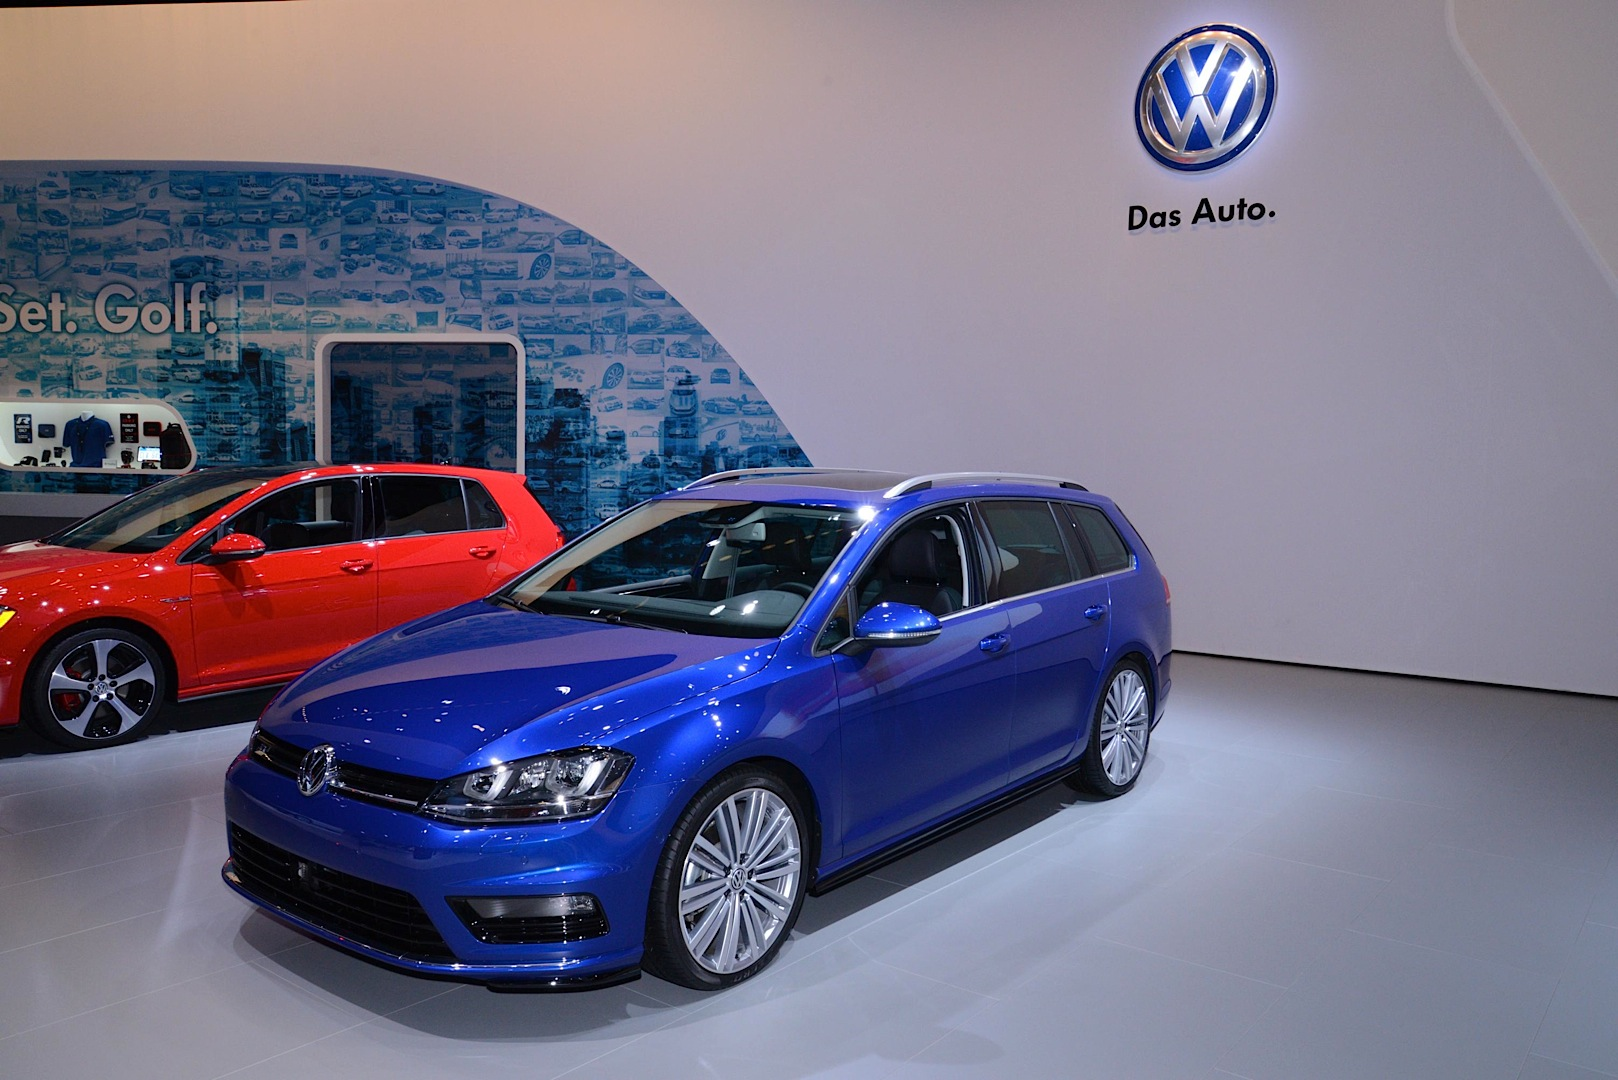 2015 VW Golf SportWagen Is Better Than an SUV [Live Photos] - autoevolution